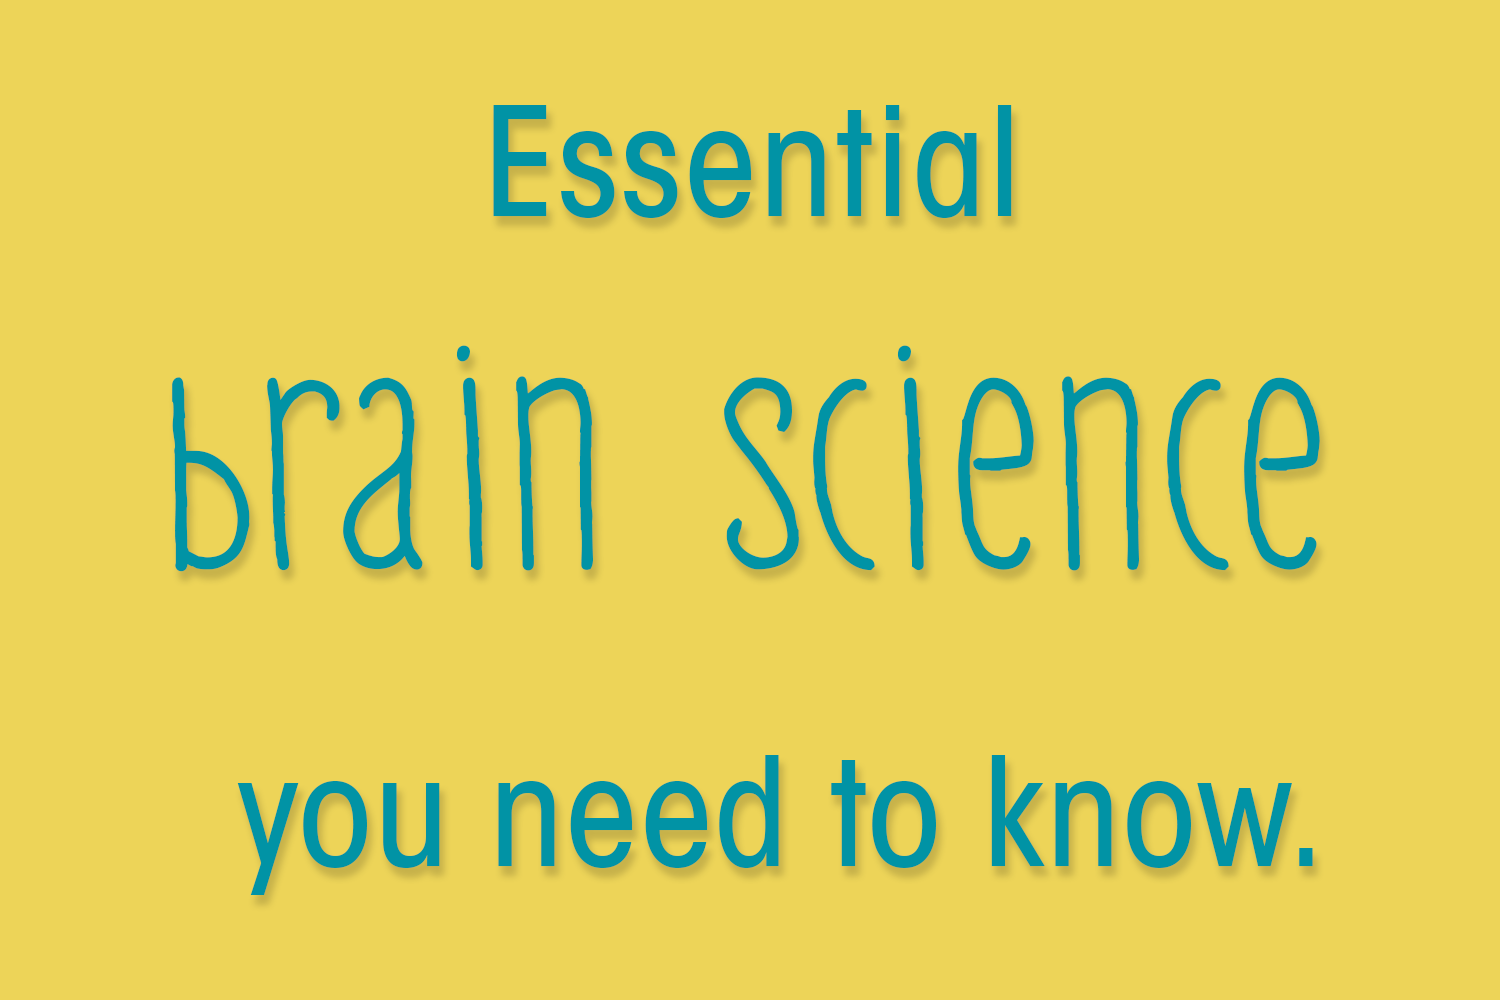 Essential brain science you need to know.